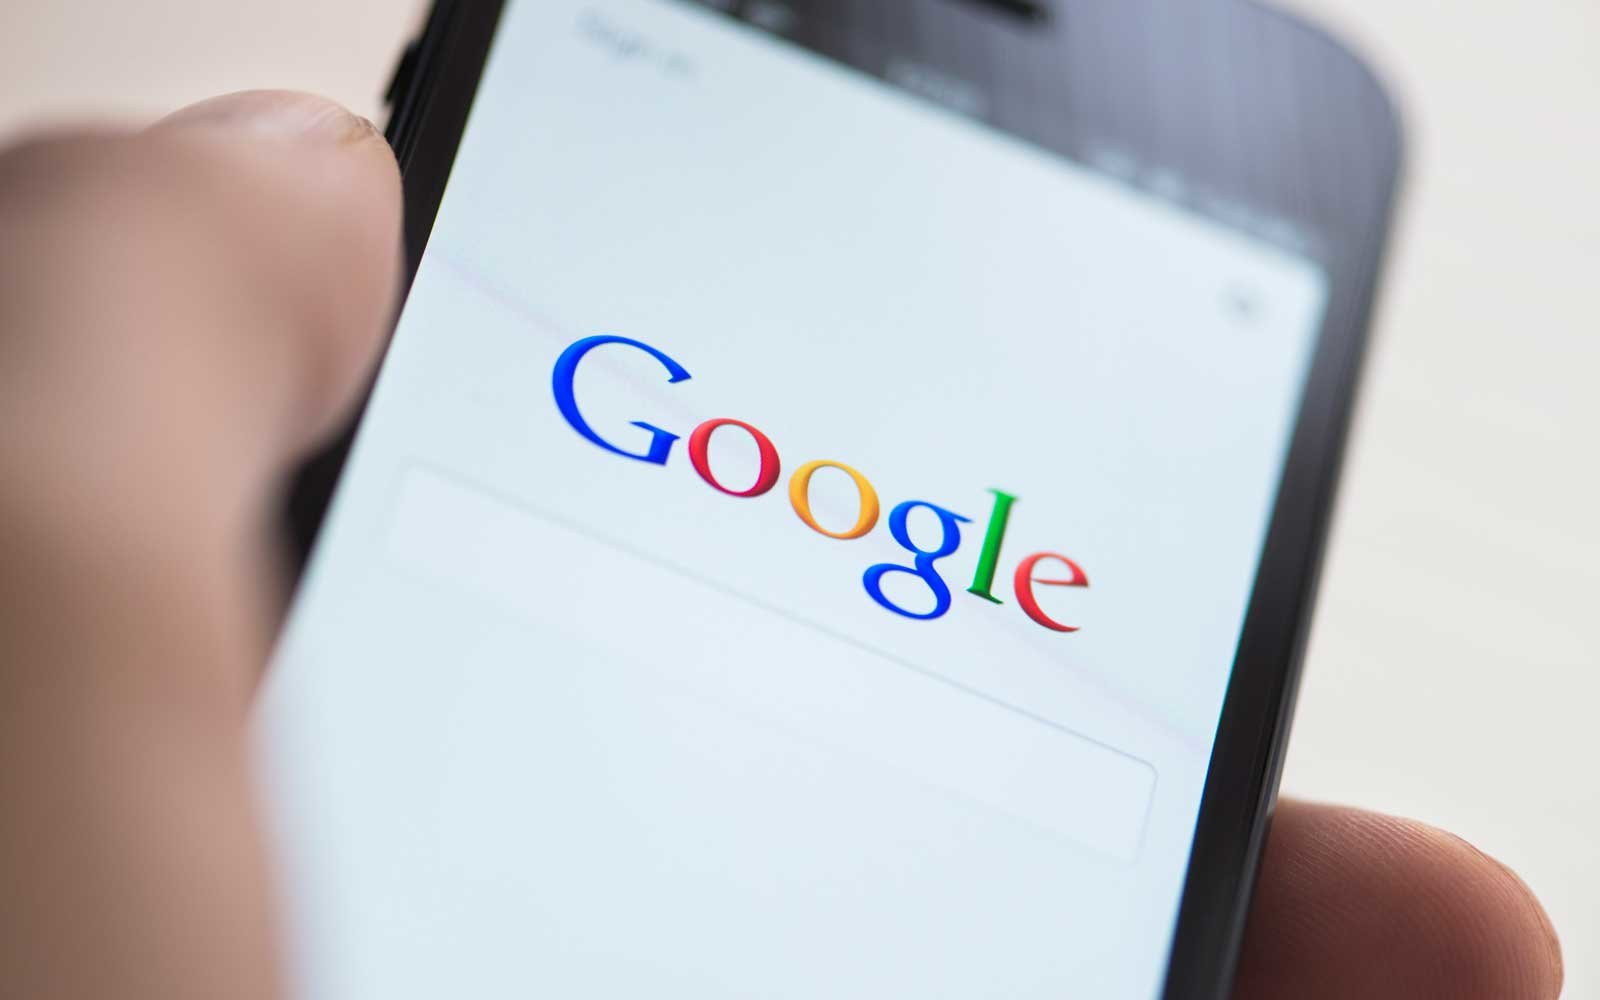 Google Keeps a Record of Your Entire Search History – Here's How to Delete It (Video)